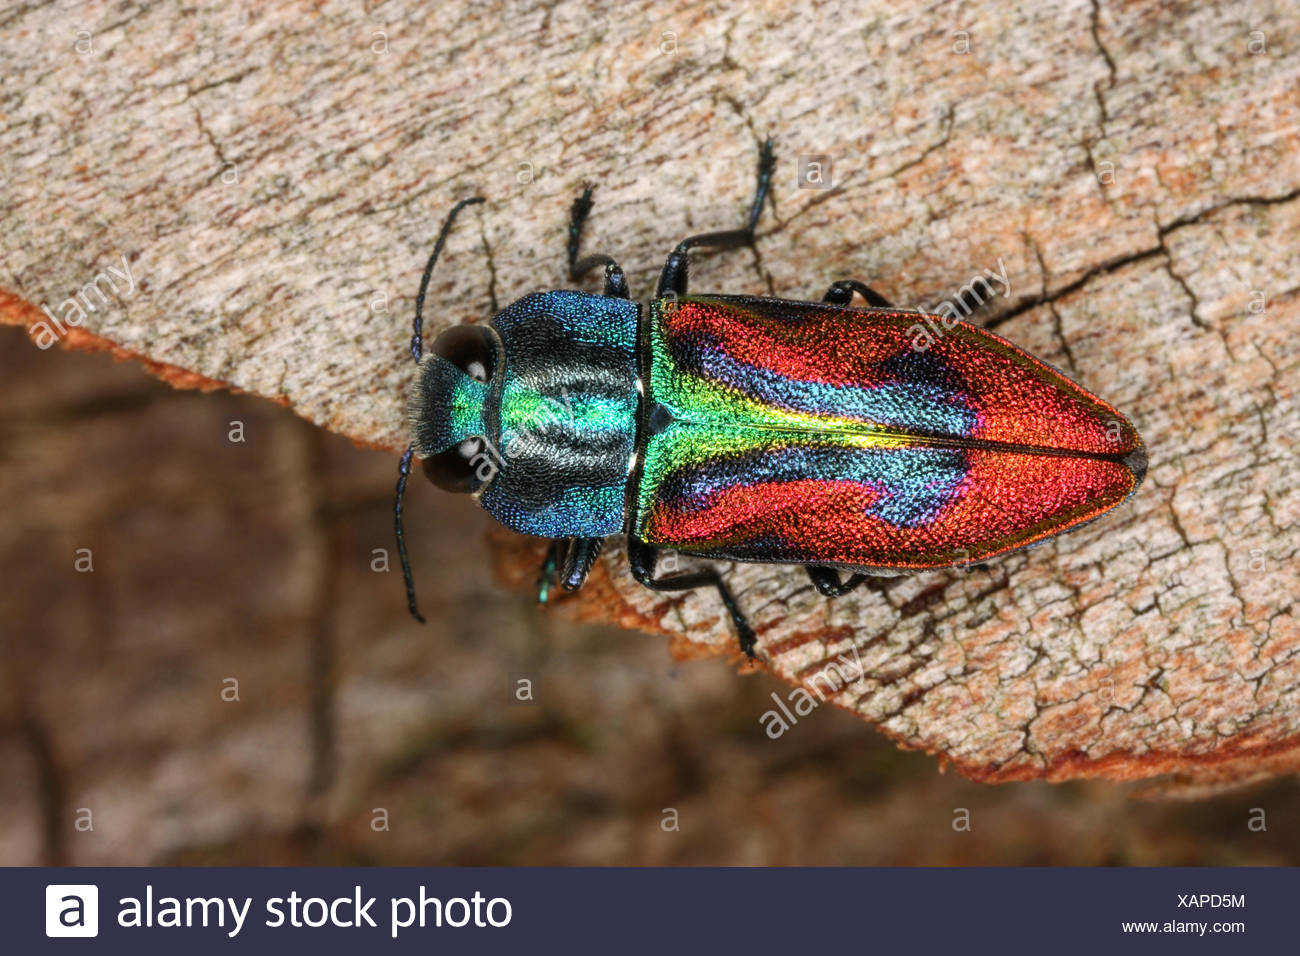 Jewel beetle, Wood-boring beetle (Anthaxia candens), on deadwood, Germany - Stock Image